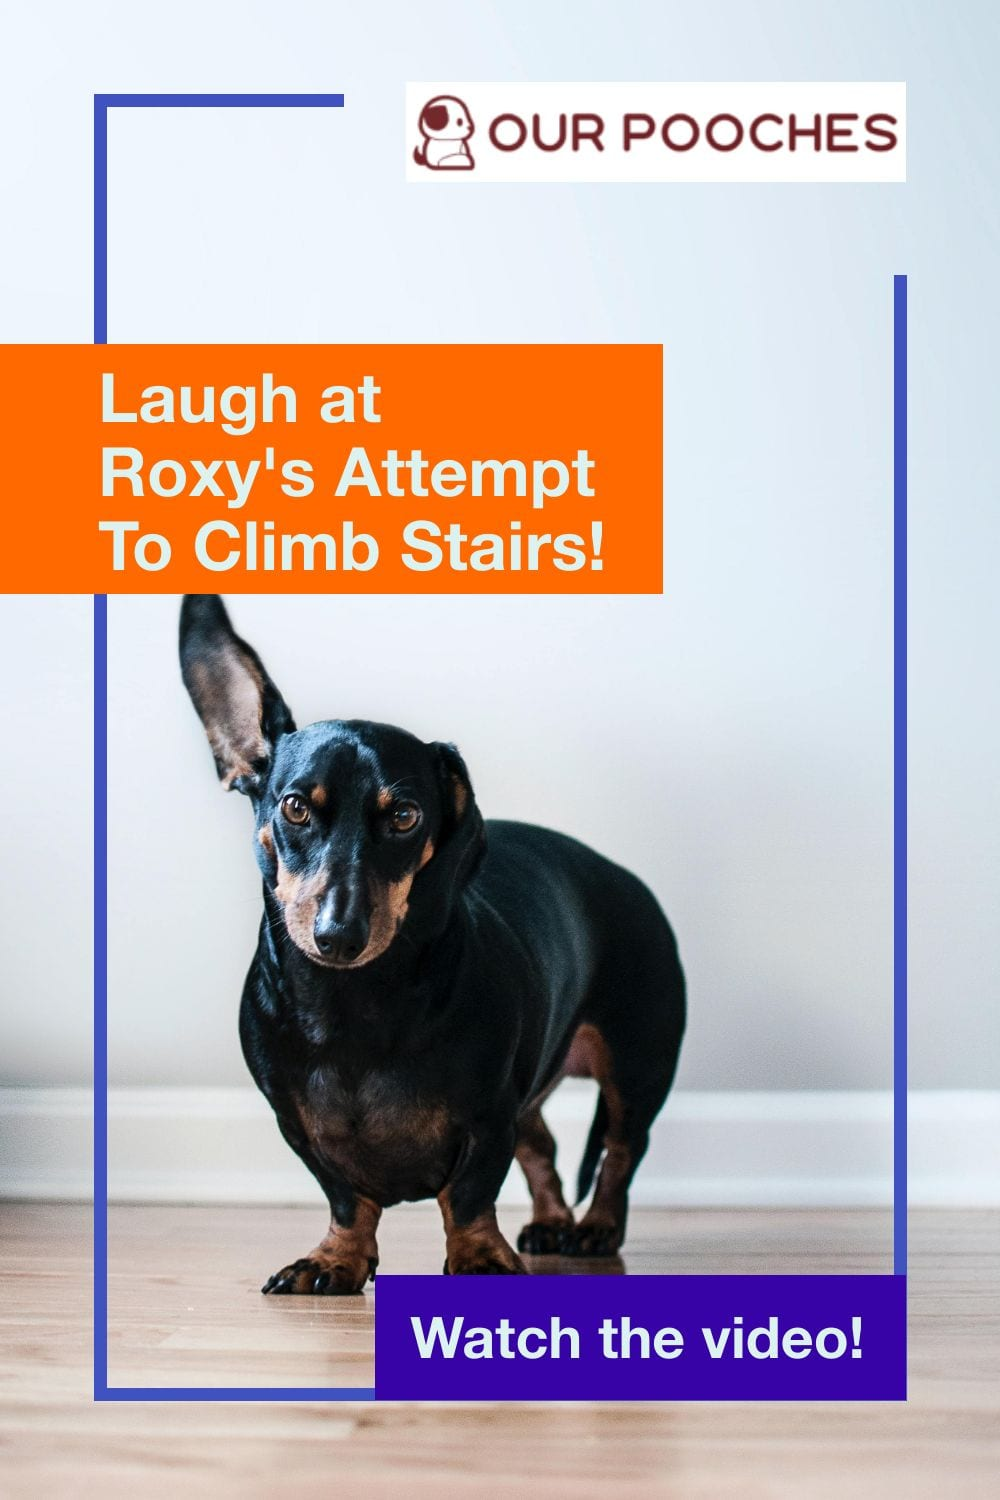 Laugh at Roxy's Attempt To Climb Stairs!